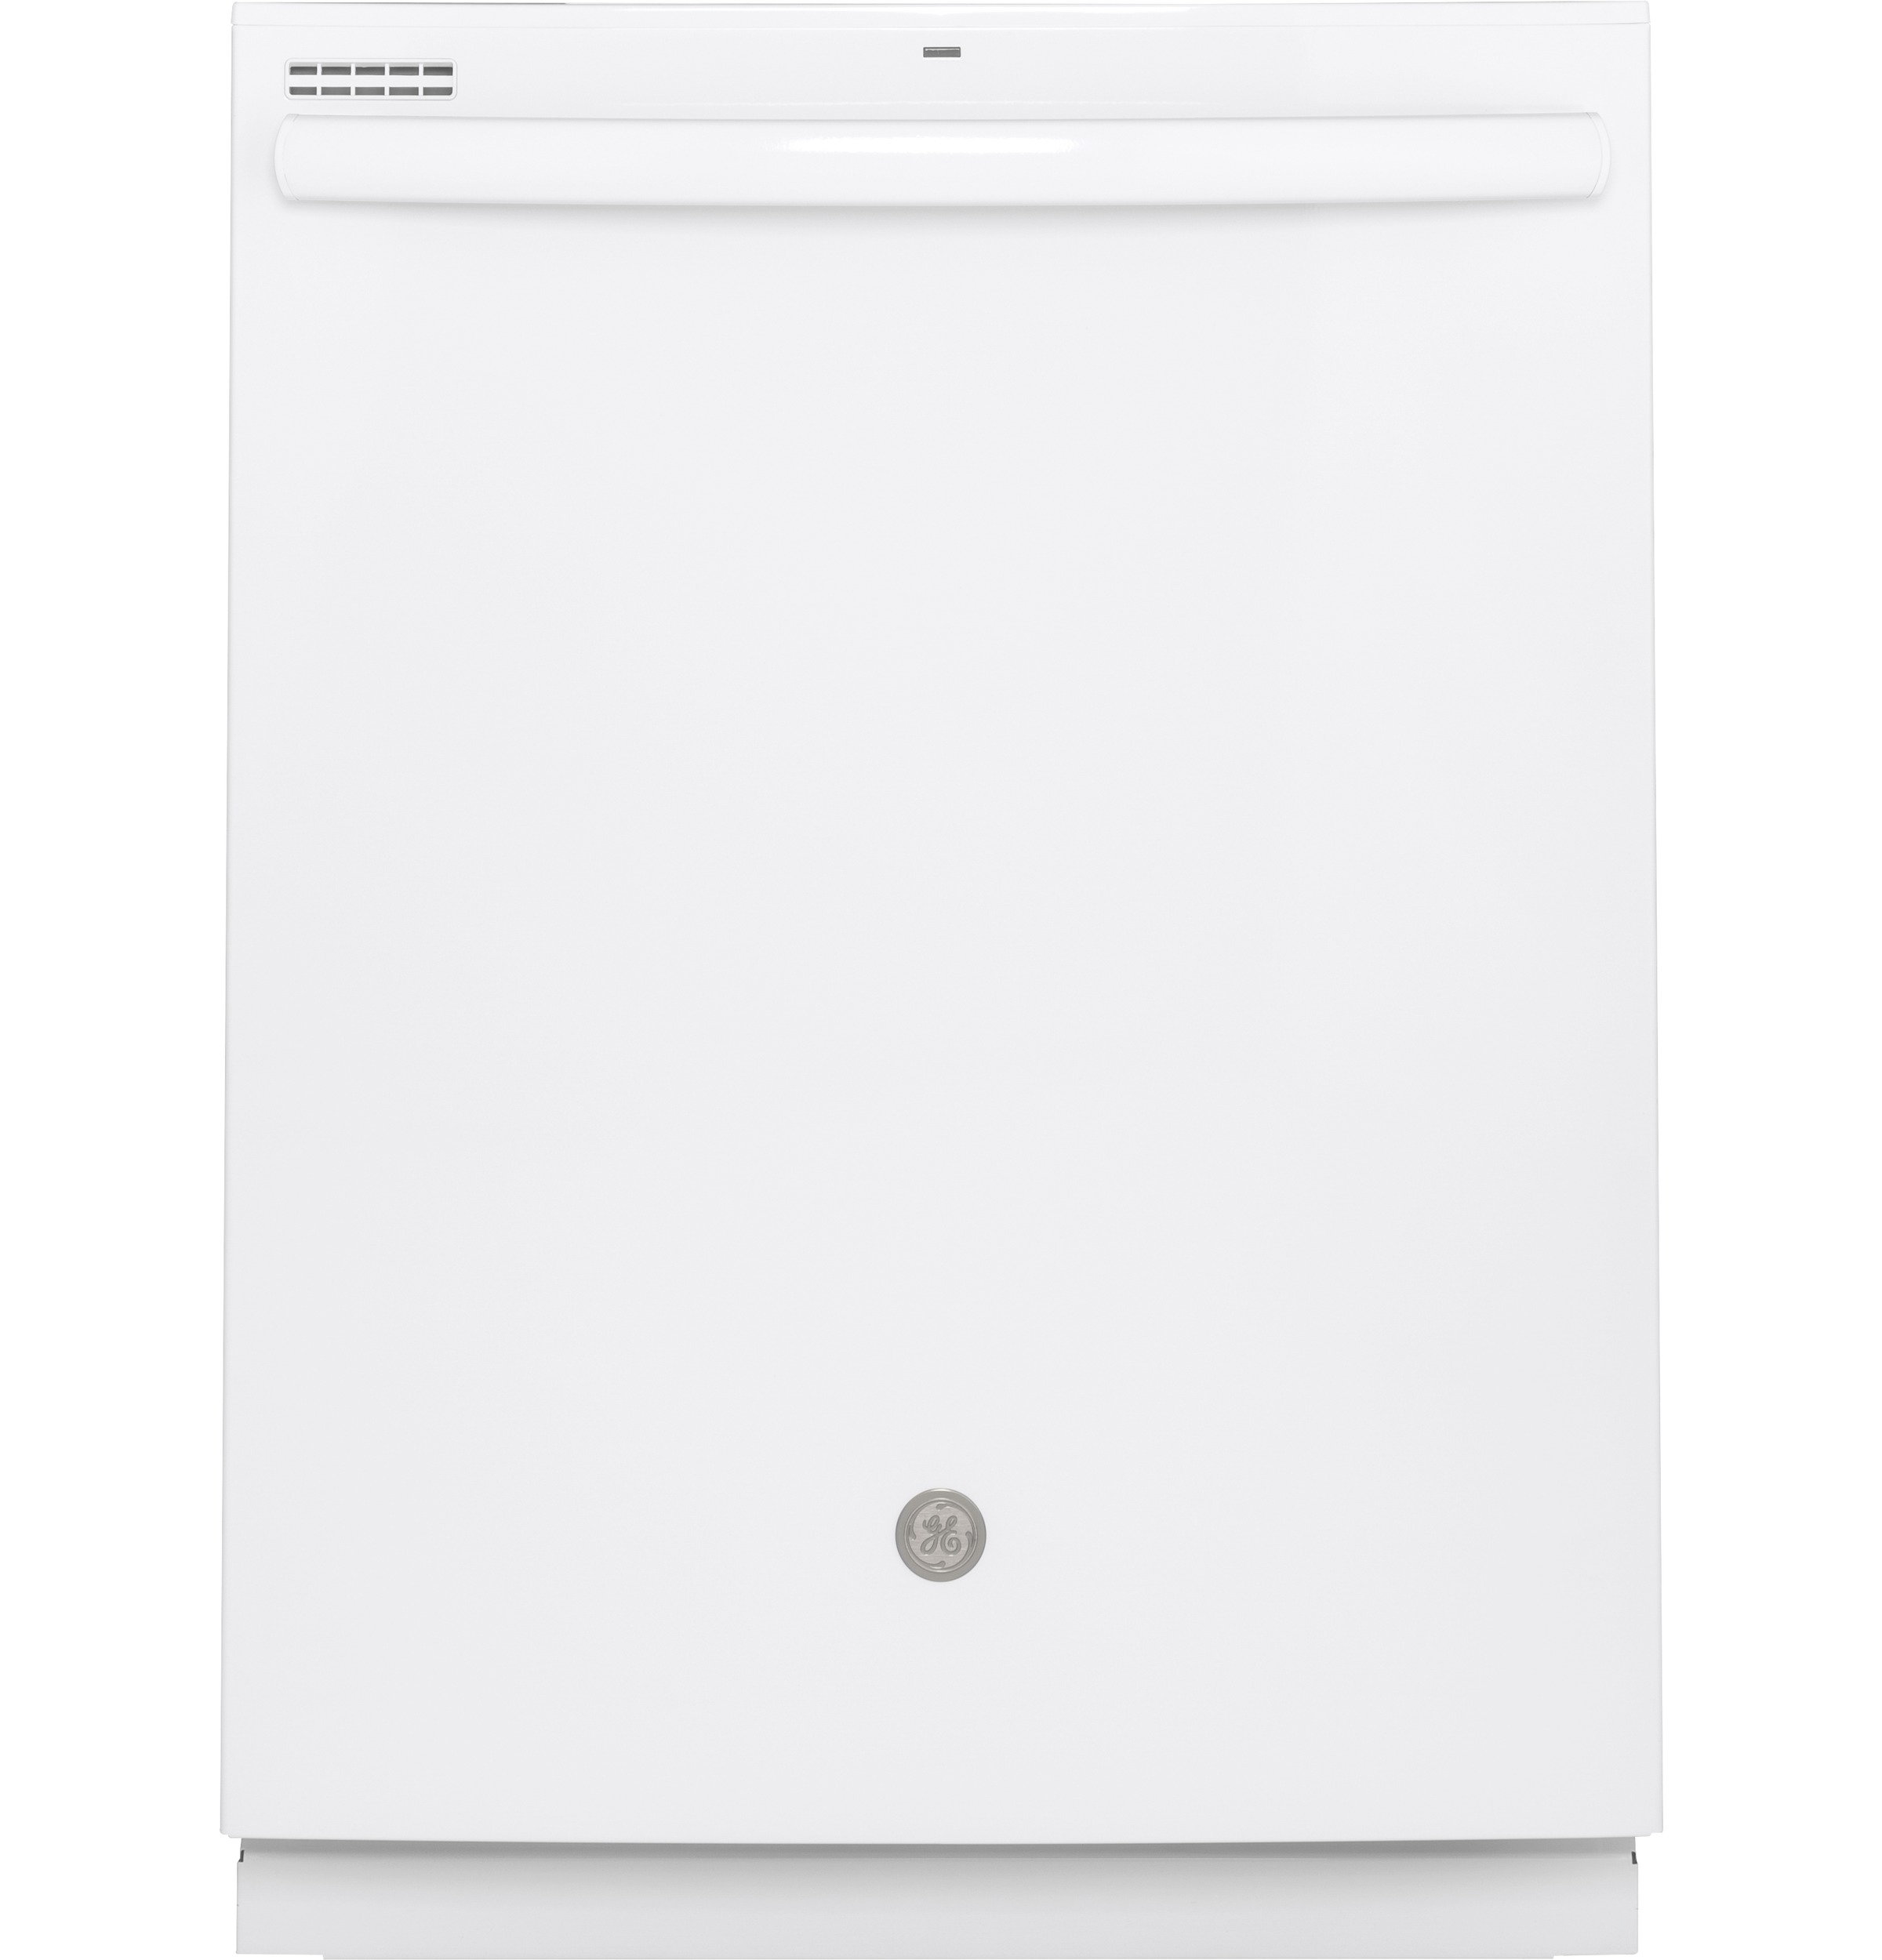 GE GE® Dishwasher with Hidden Controls